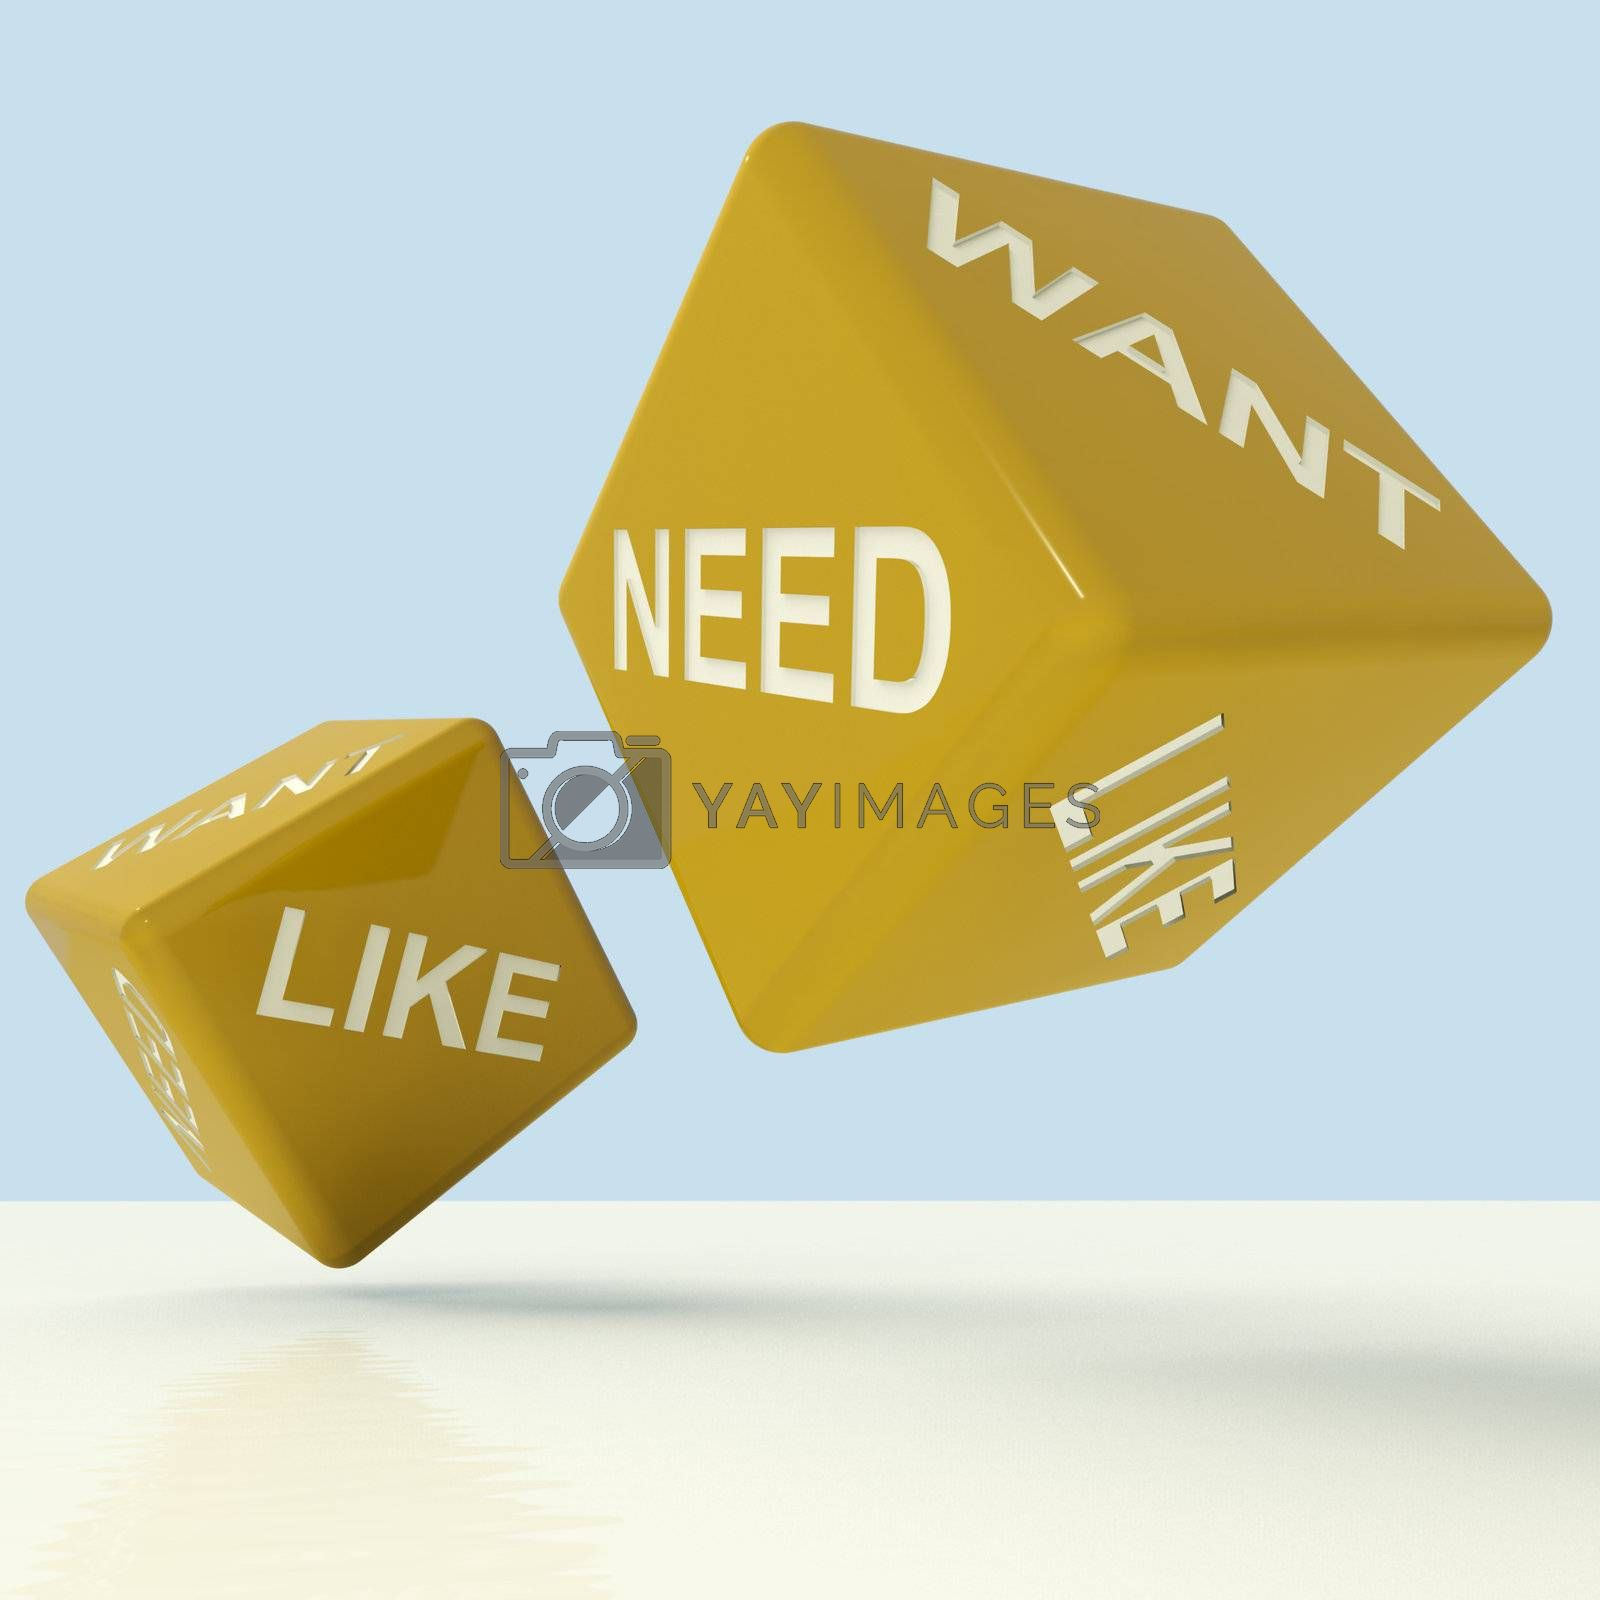 Need Want Like Yellow Dice Showing Materialism And Desire